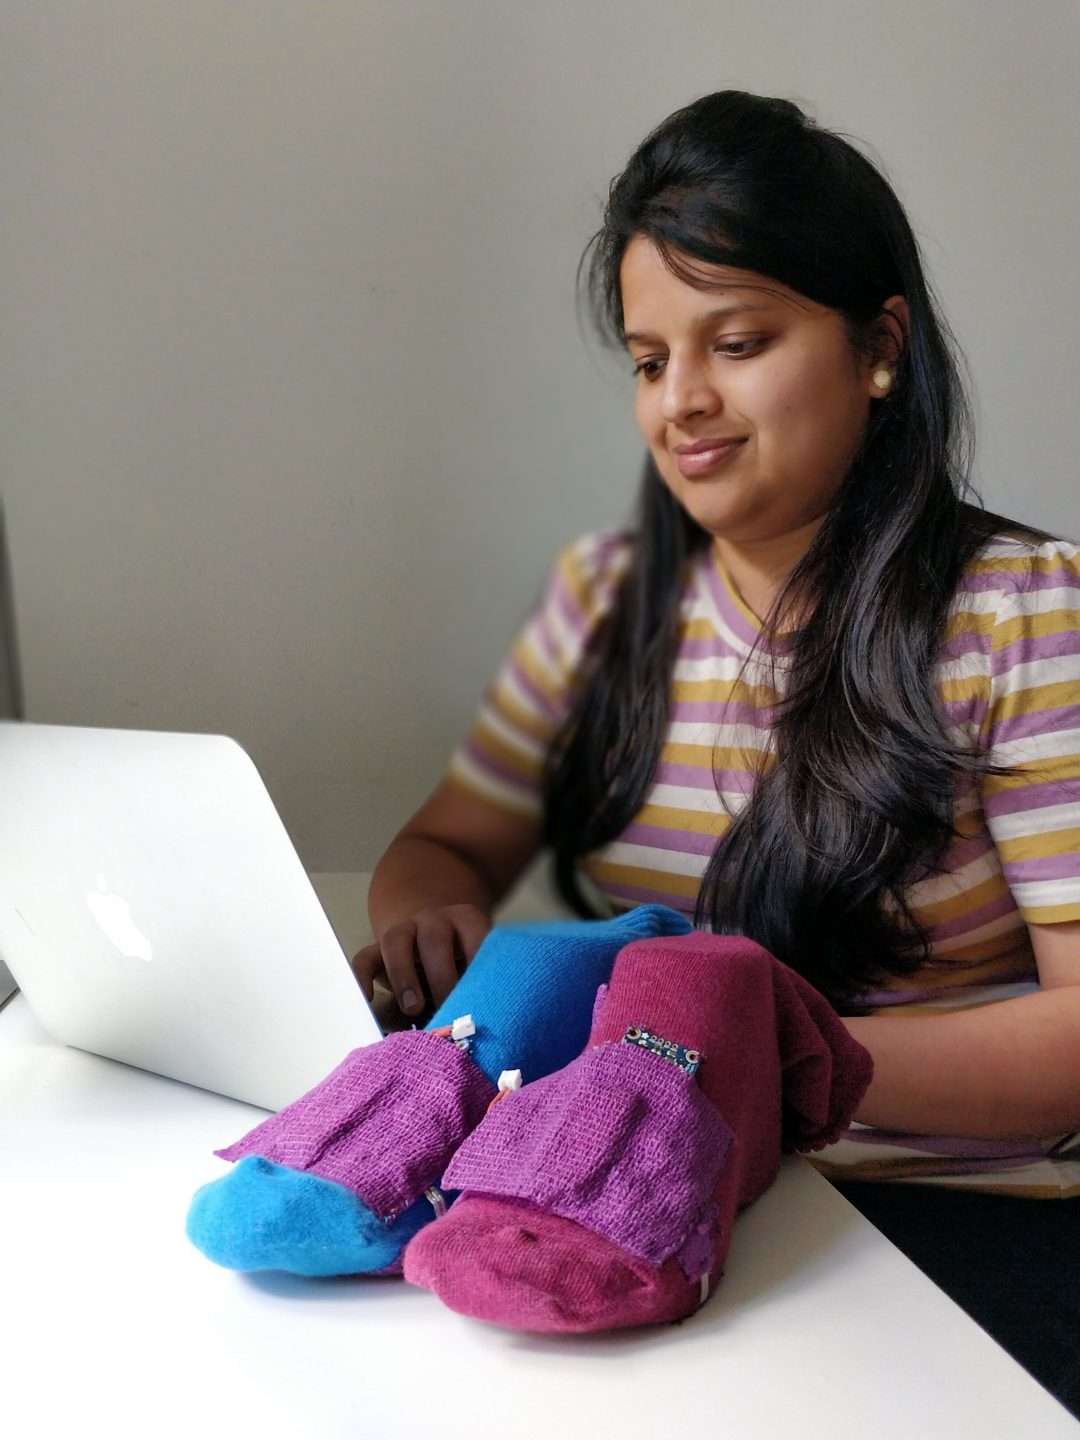 Deepti Aggarwal shows off her smart socks.